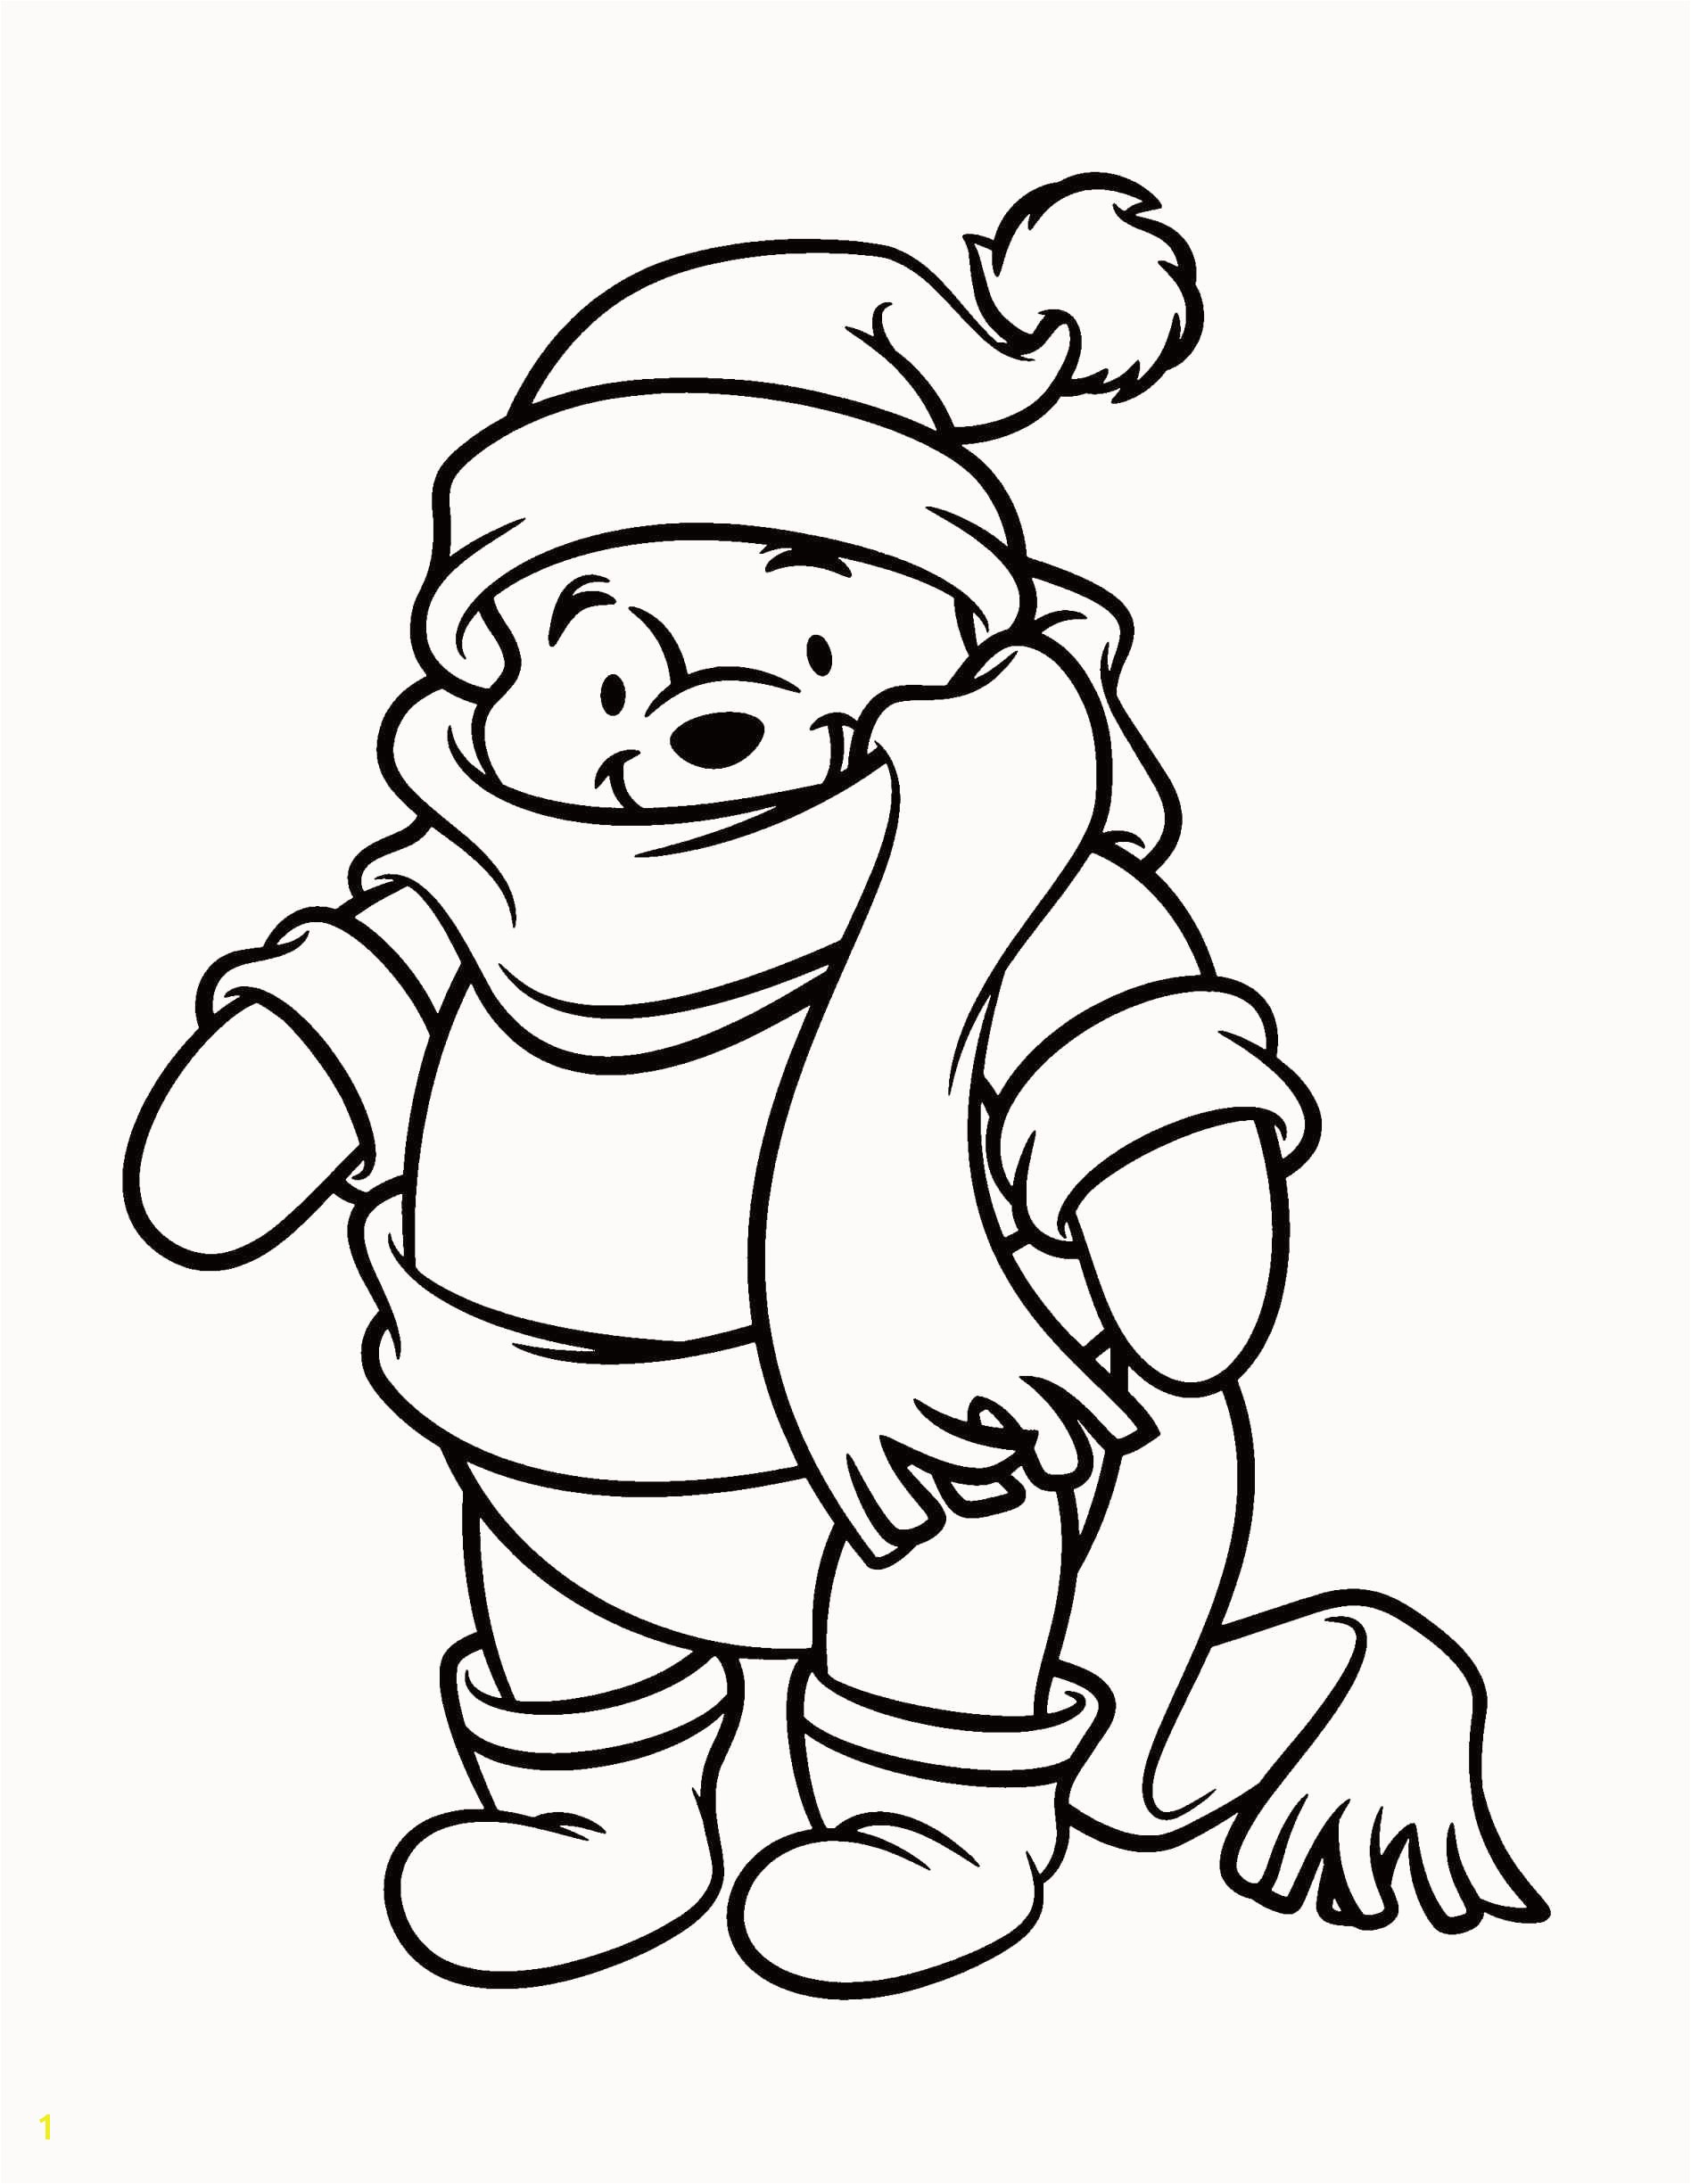 Hero Factory Brain Coloring Pages Perfect Cold Drawing at Getdrawings